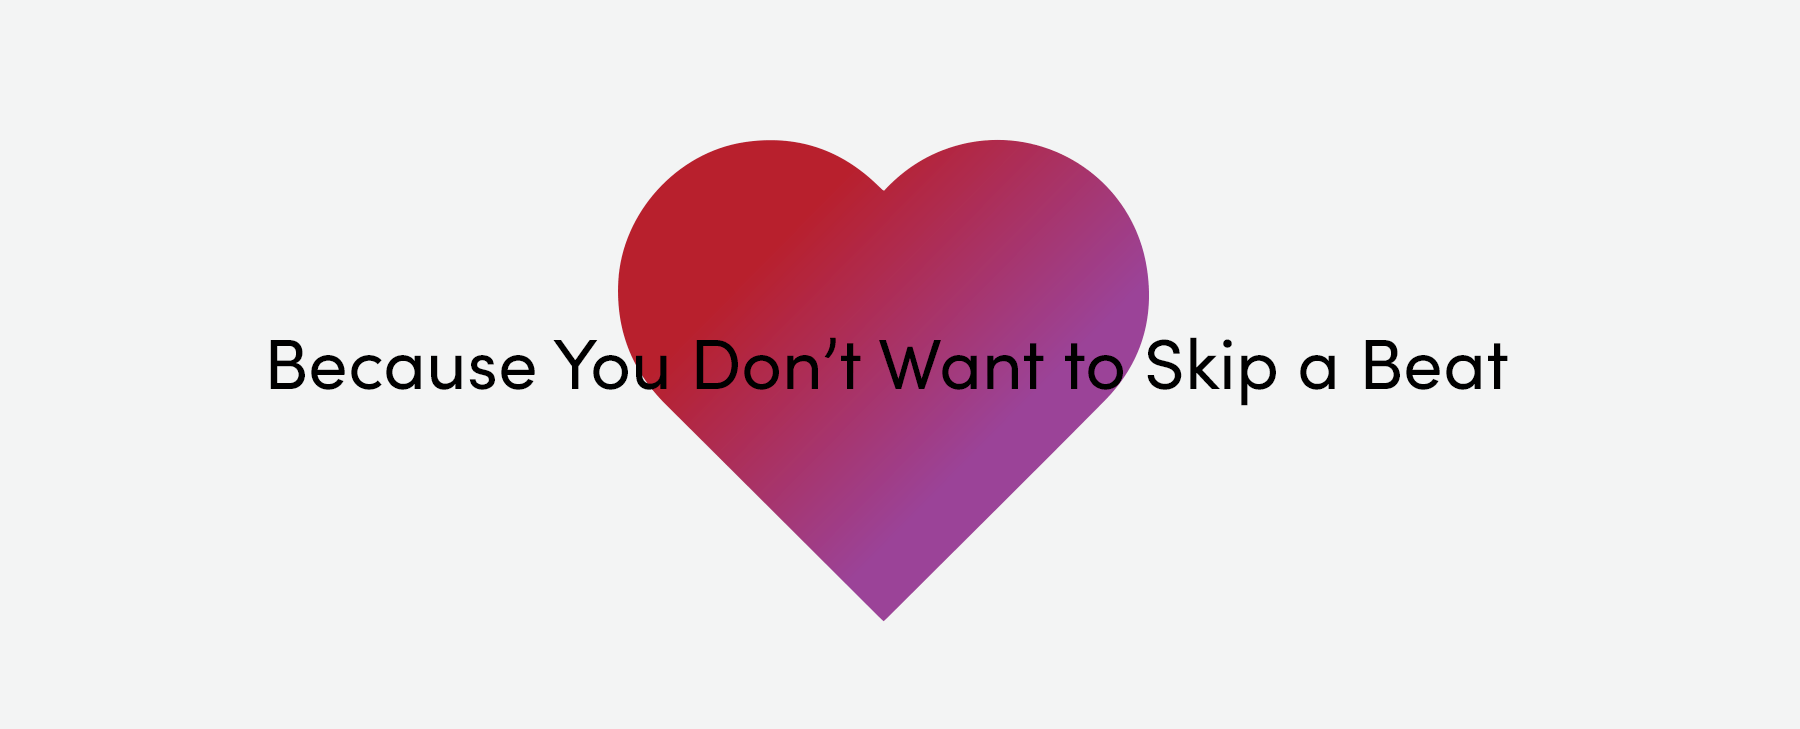 Because your heart won't skip a beat